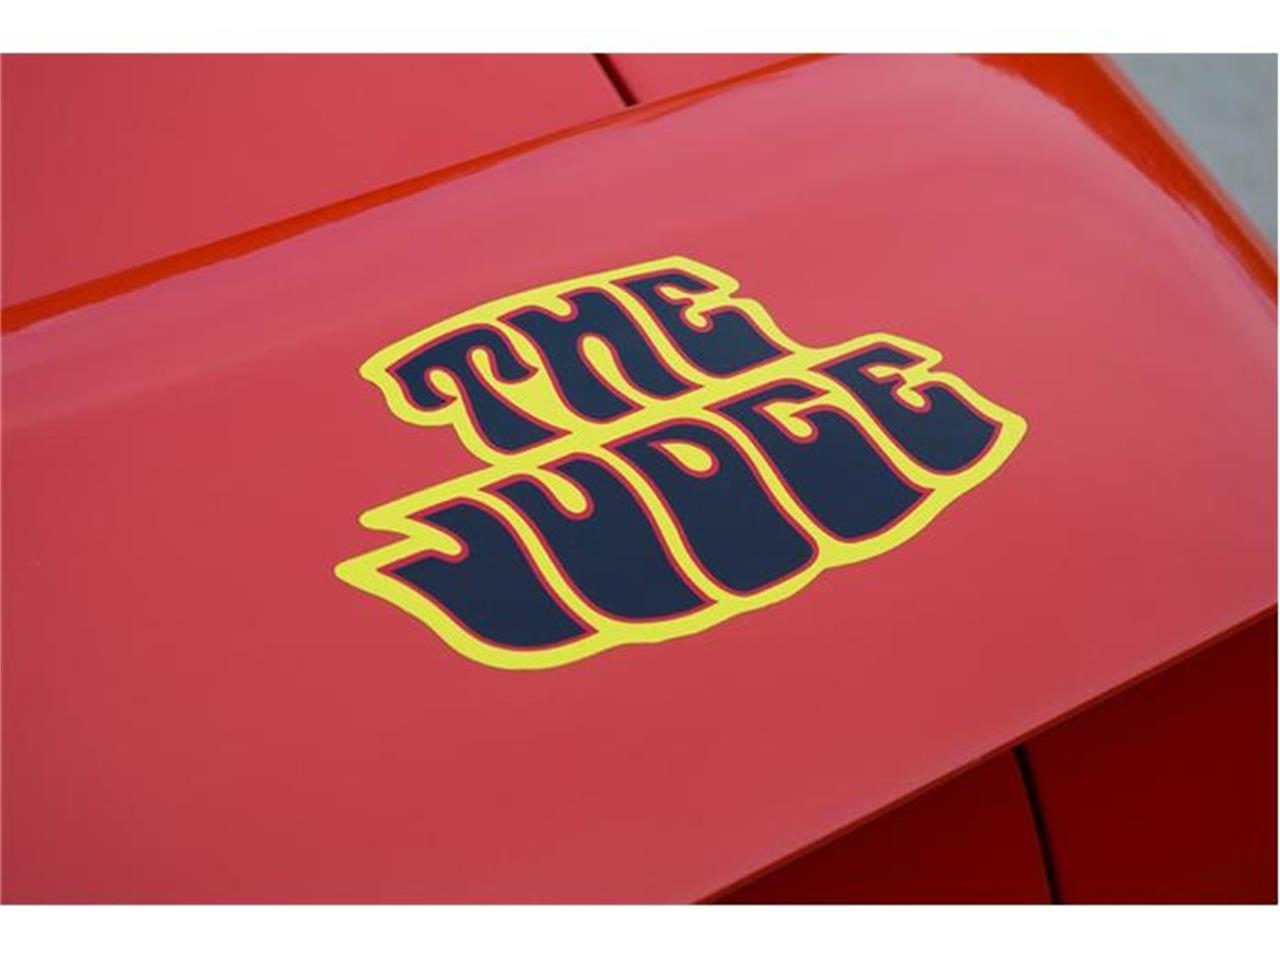 Large Picture of 1969 Pontiac GTO (The Judge) - $179,000.00 Offered by Texas Trucks and Classics - H937